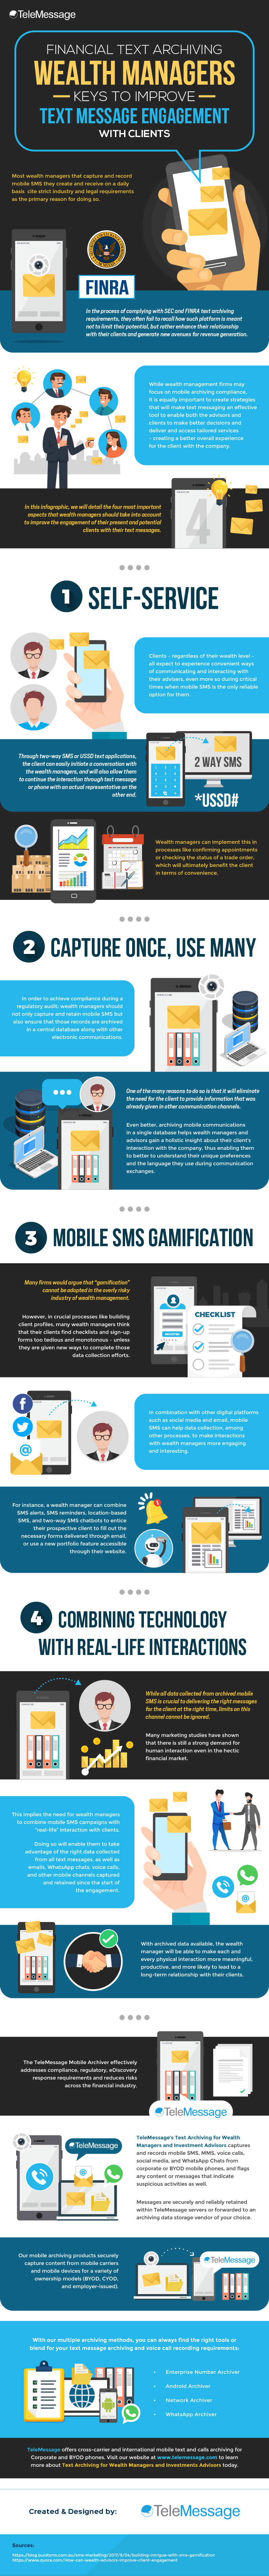 Financial Text Archiving – Wealth Managers Keys to Improve Text Message Engagement with Clients #infographic